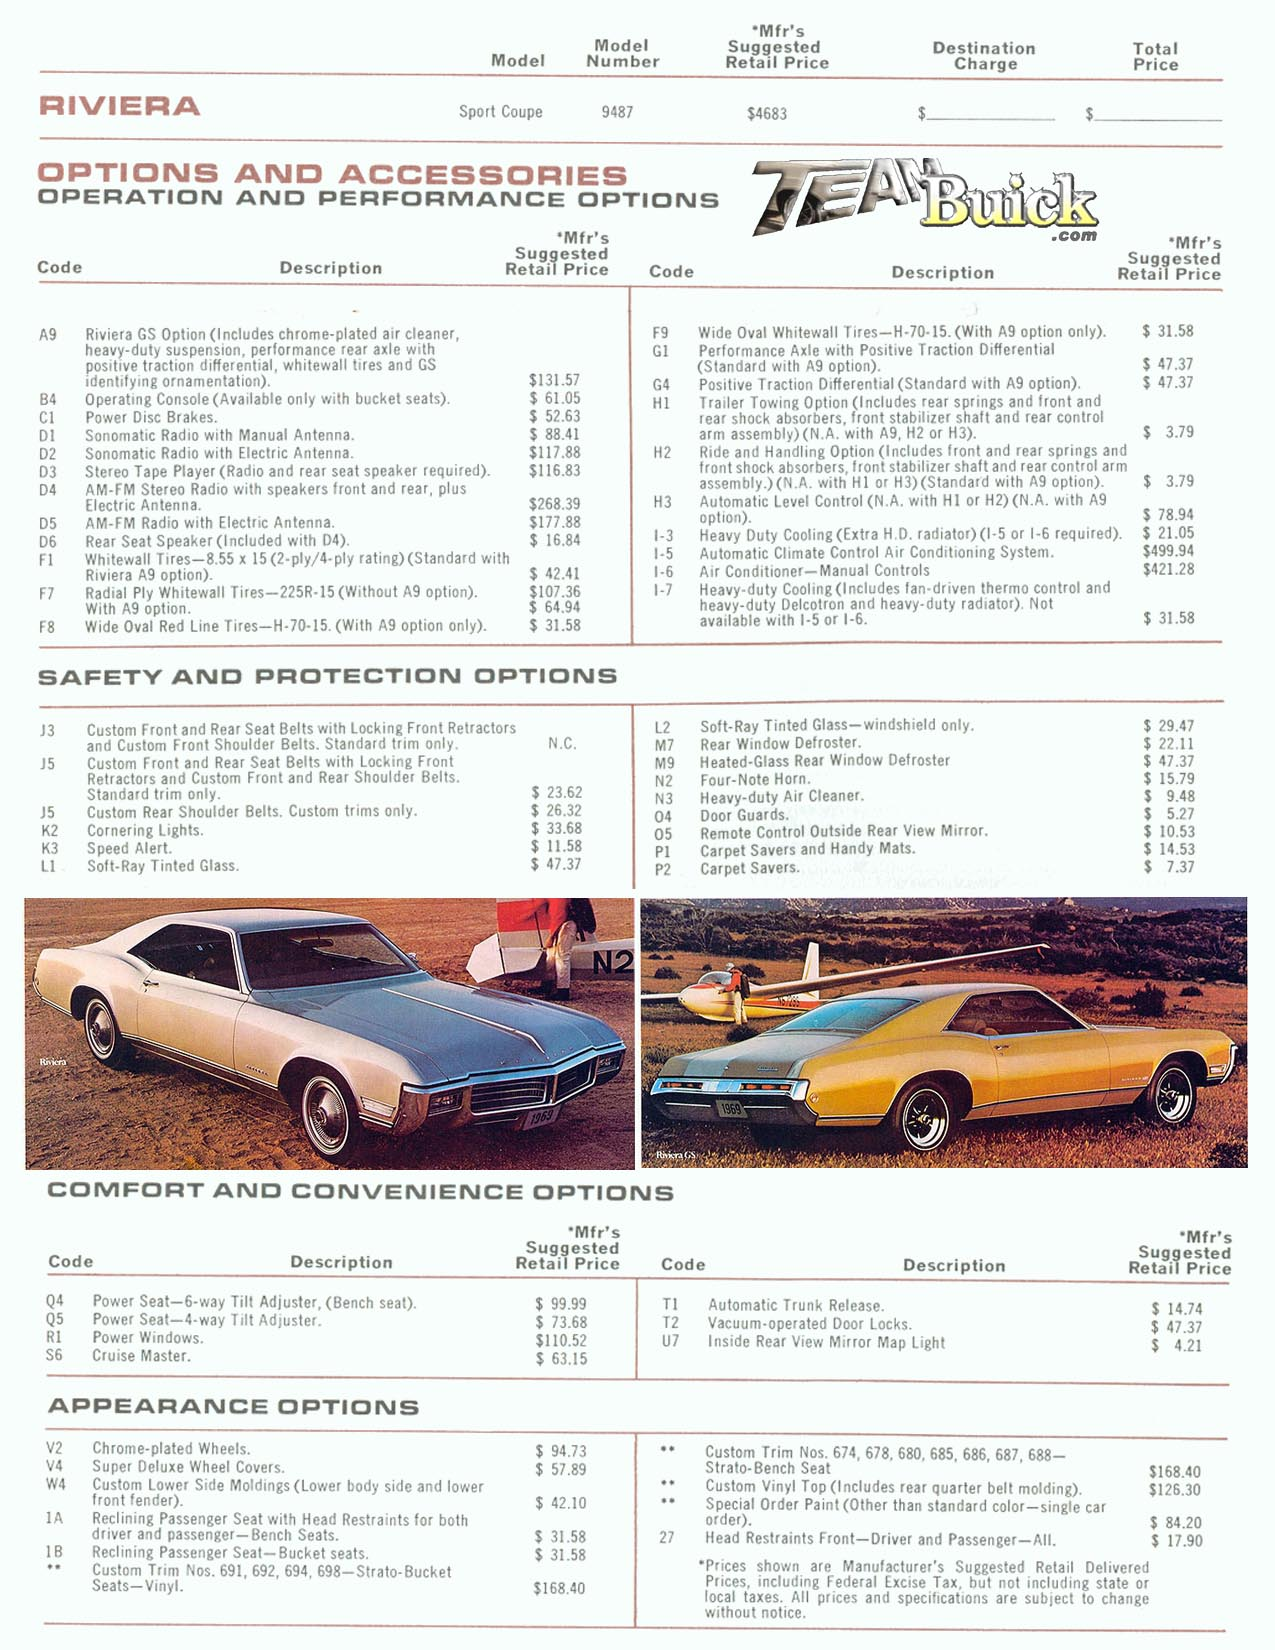 1969 Riviera Options and Codes